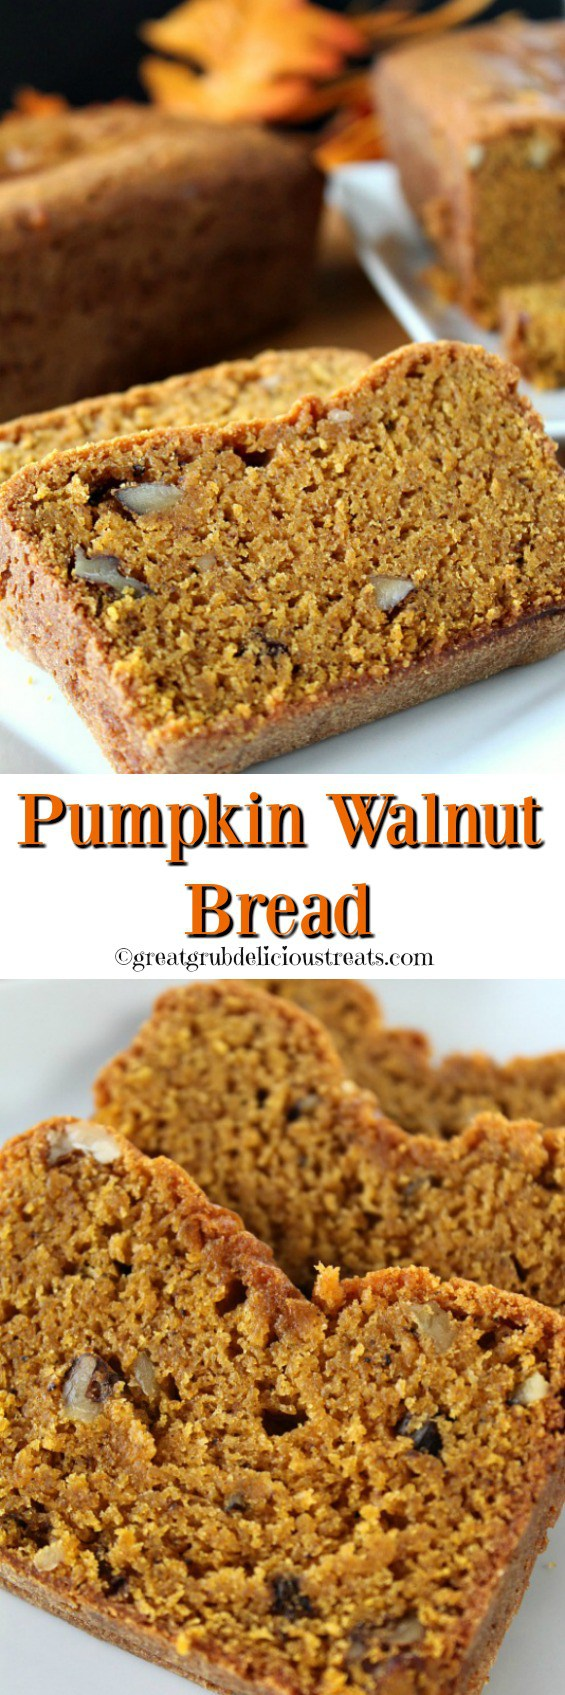 Pumpkin Walnut Bread heavy & flavorful. Bundt pan